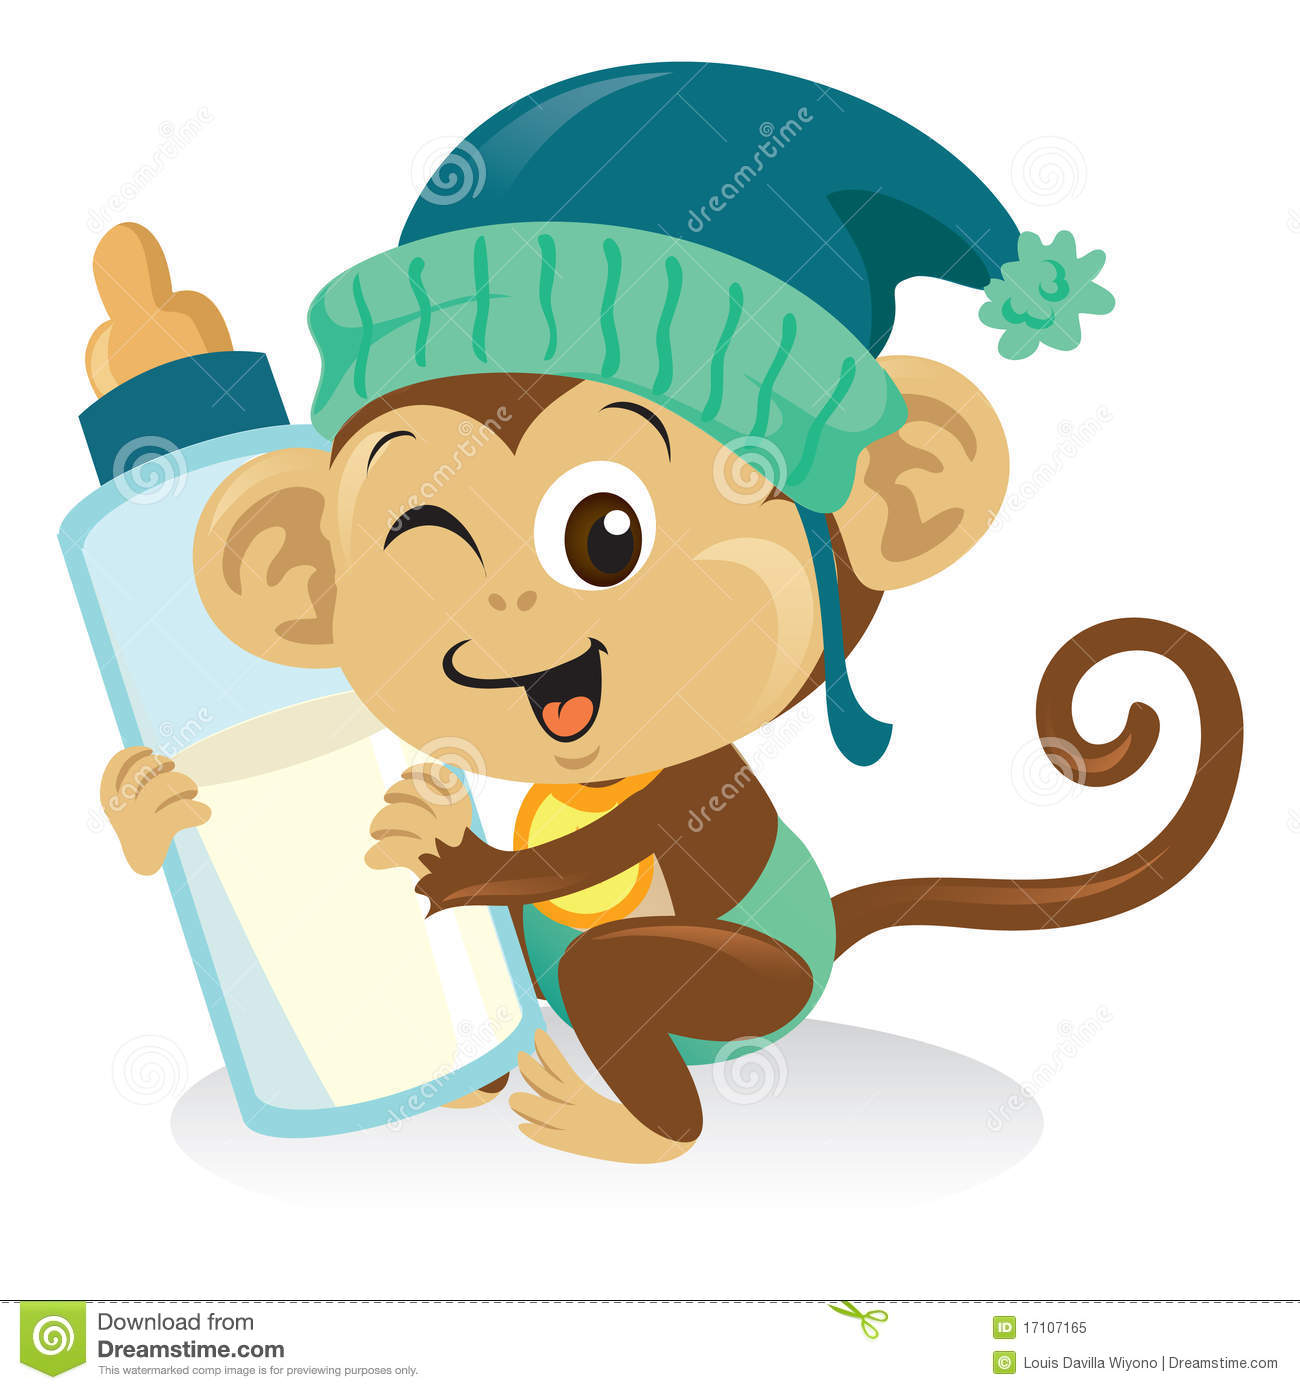 Adorable baby monkey cartoon illustration holding a bottle of milk.